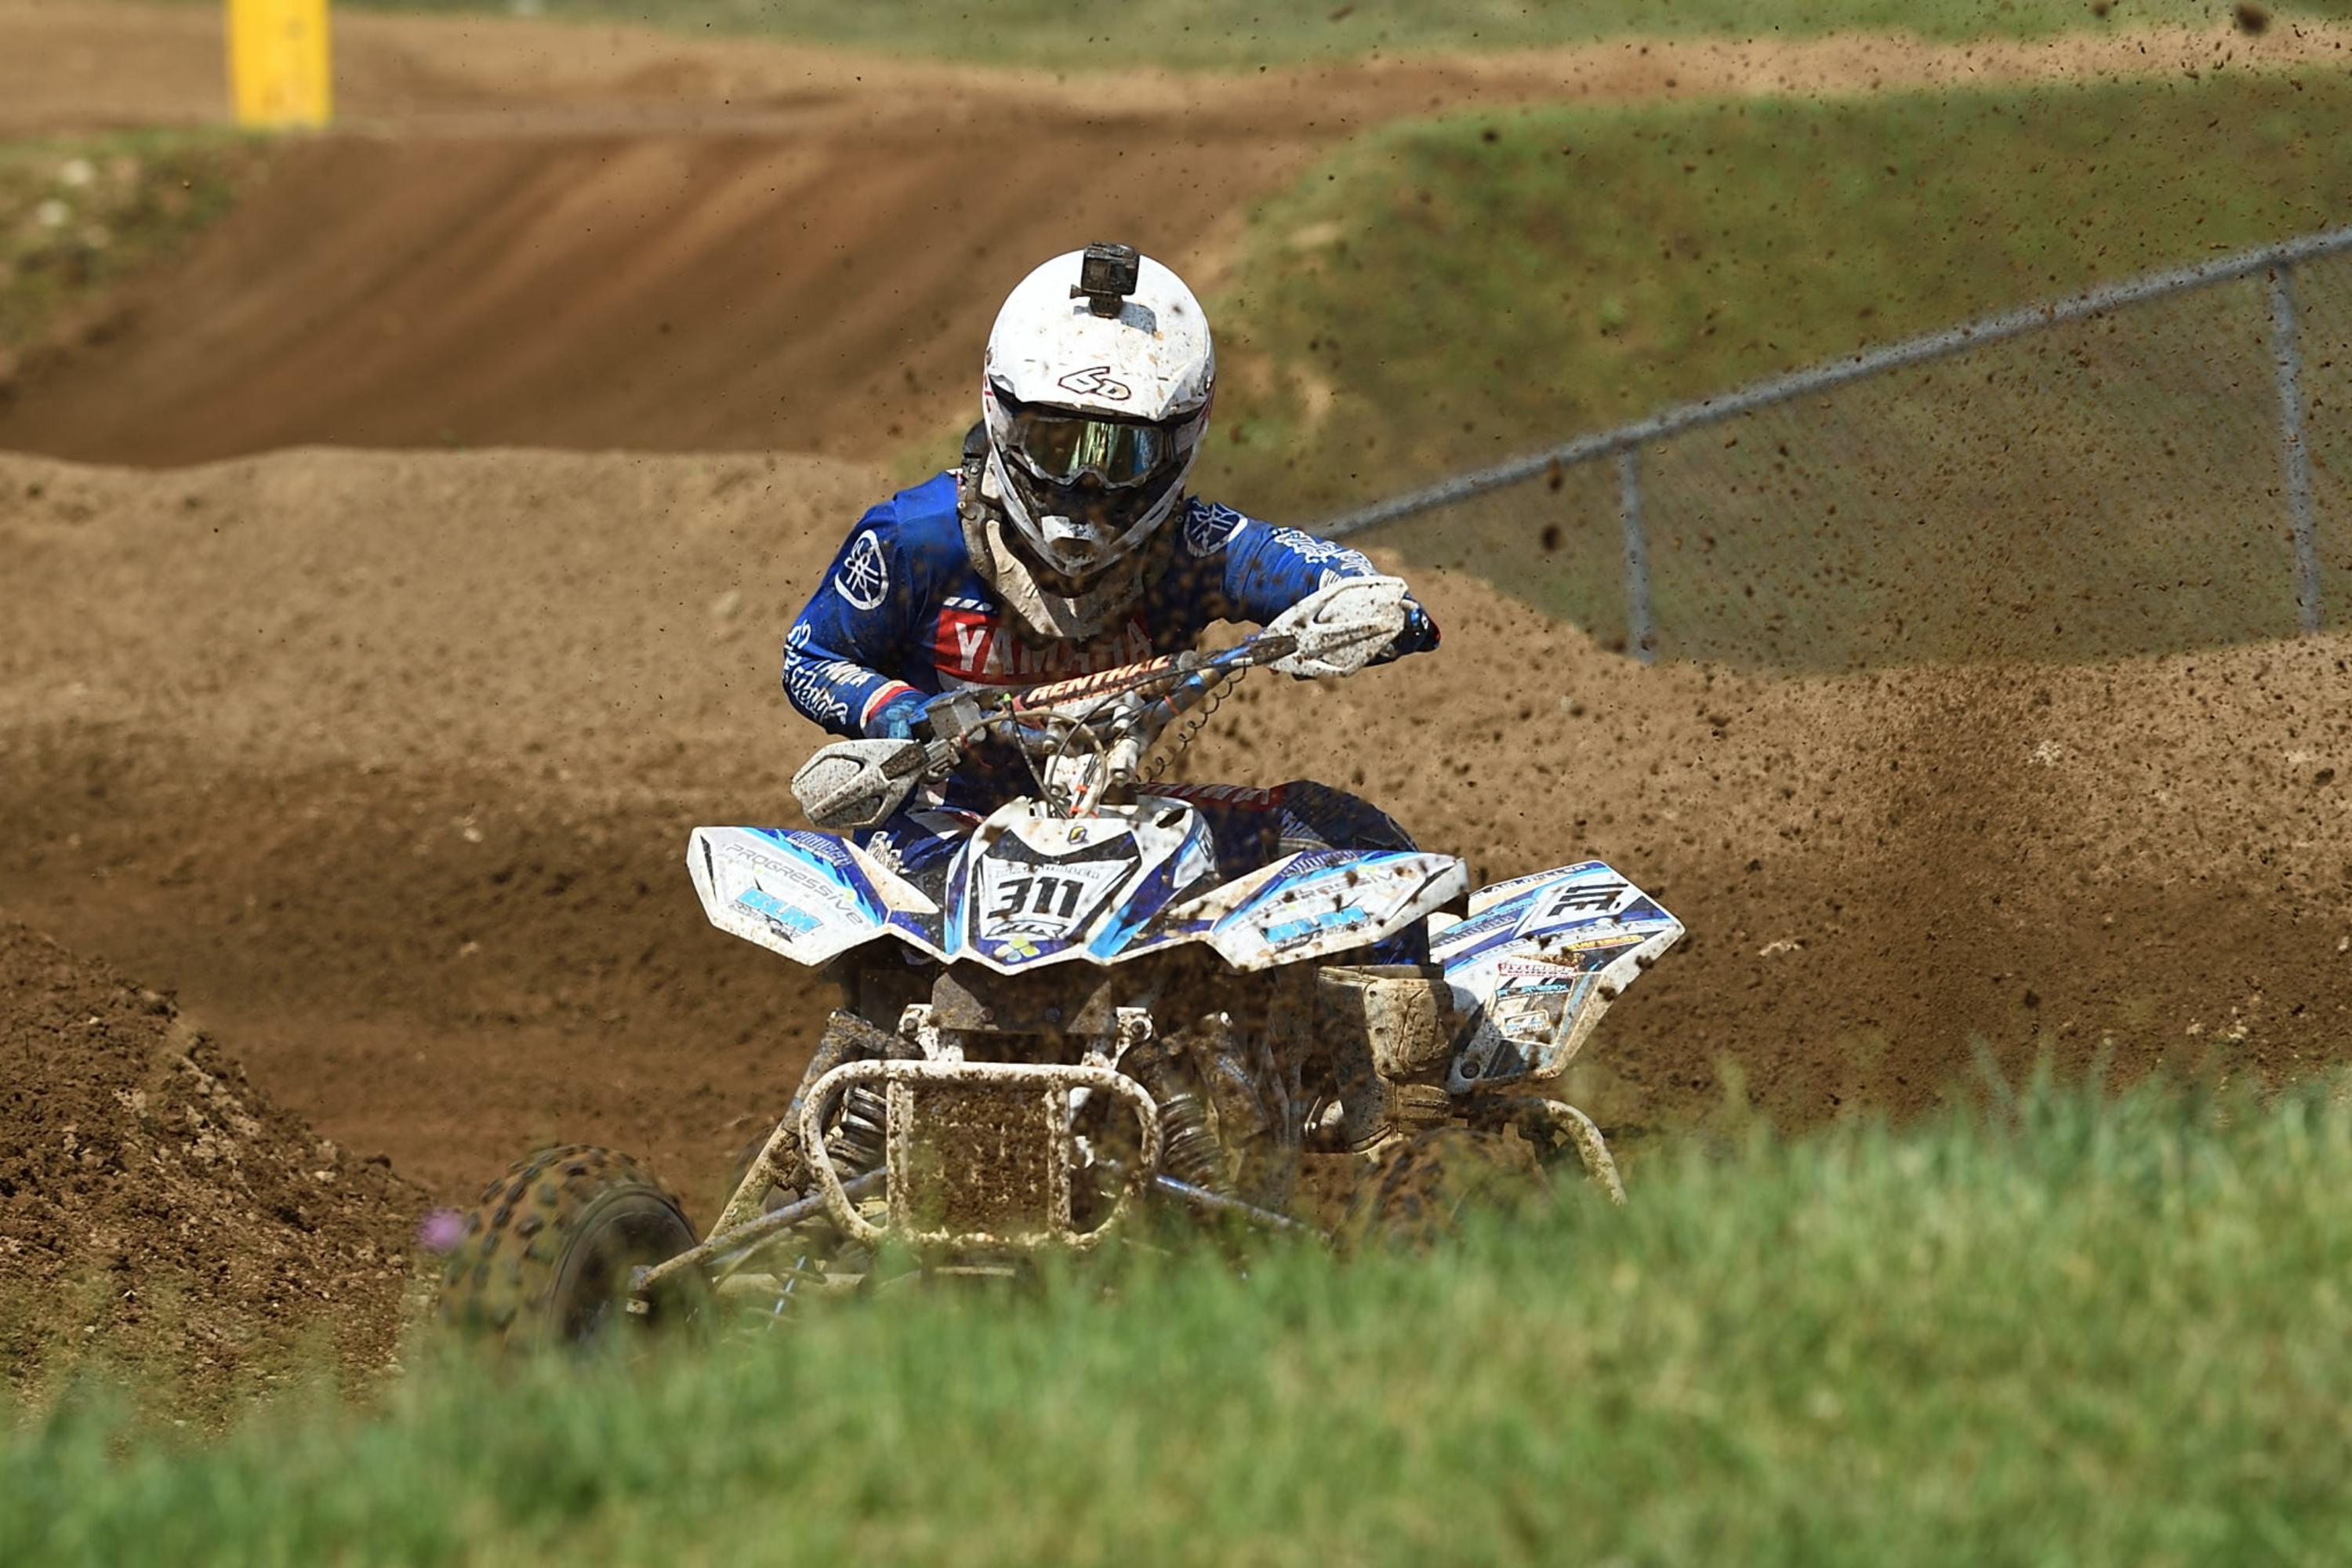 Atv Motocross Atv Motocross National Championship Presented By Cst Tires An Ama National Championship